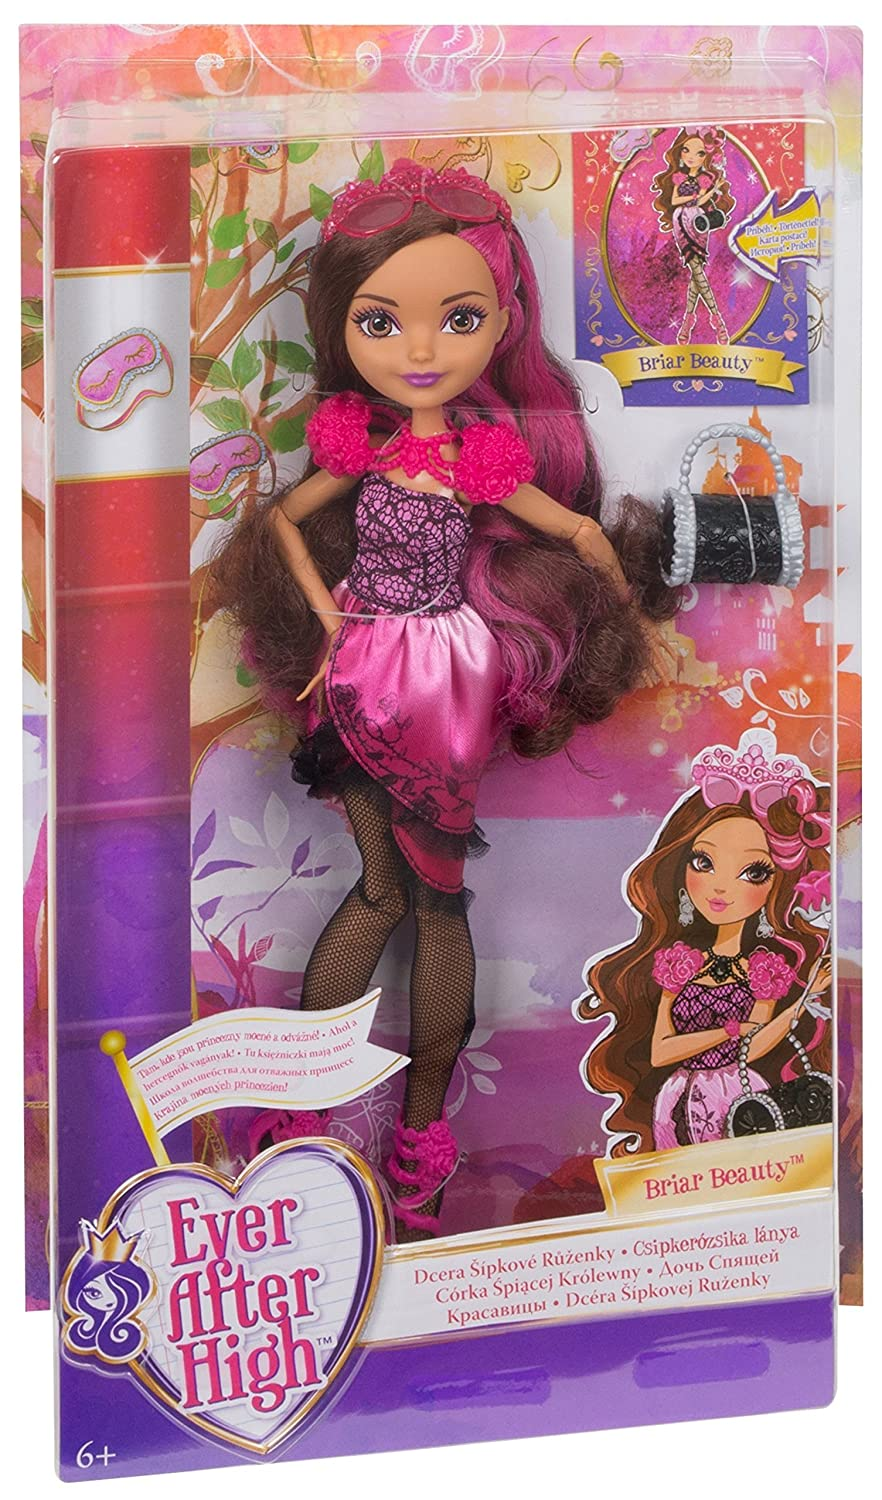 Buy Ever After High Briar Beauty Doll Online At Low Prices In India